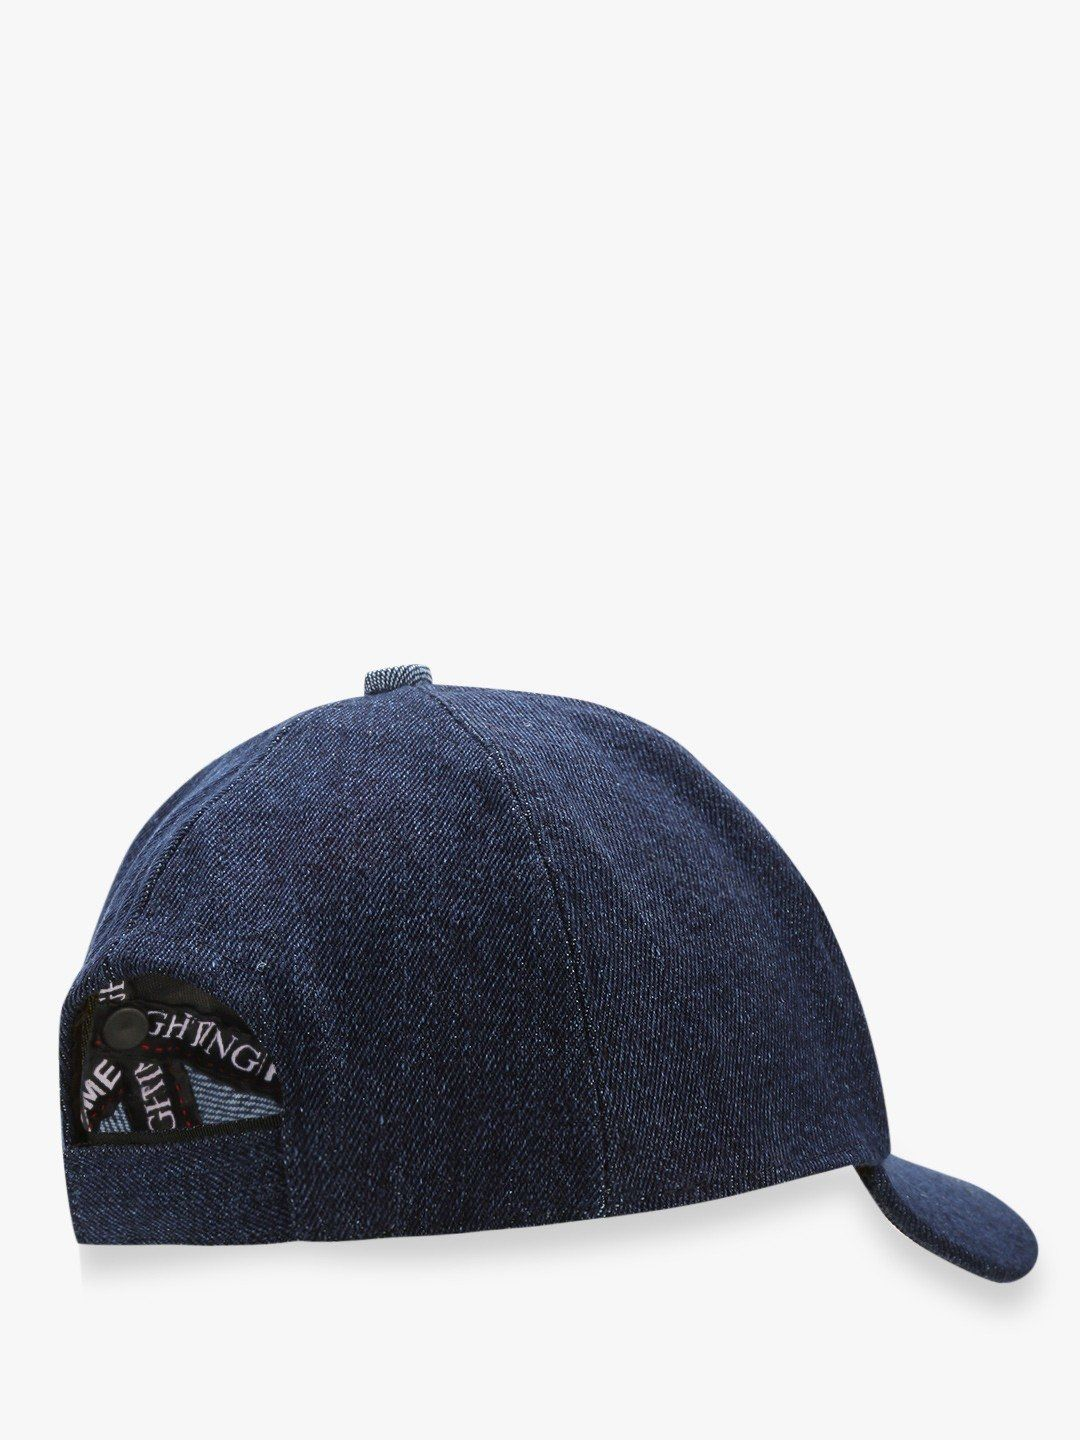 HUNGOVER Slogan Printed Denim Cap